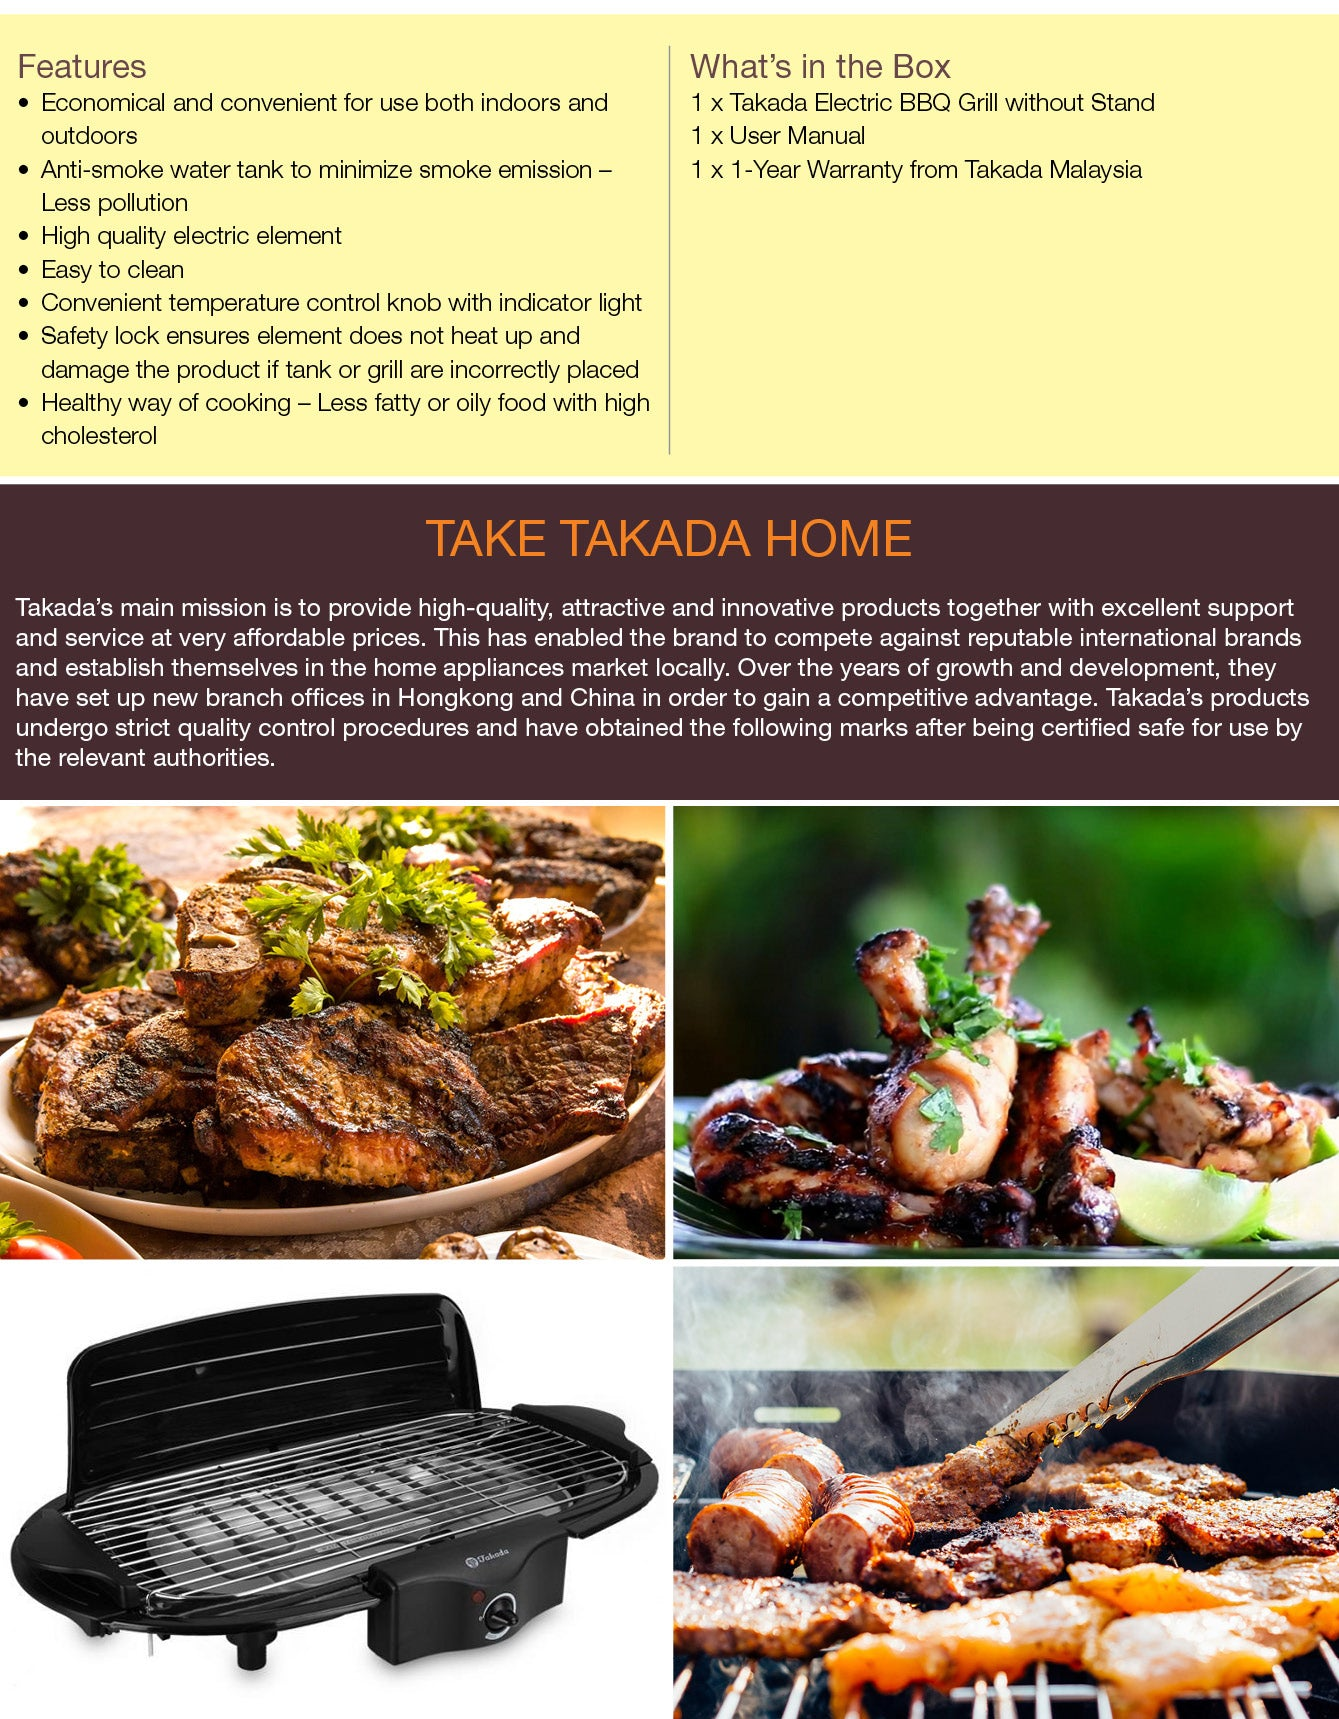 takada-isb-6038B-electric bbq-grill-without-stand